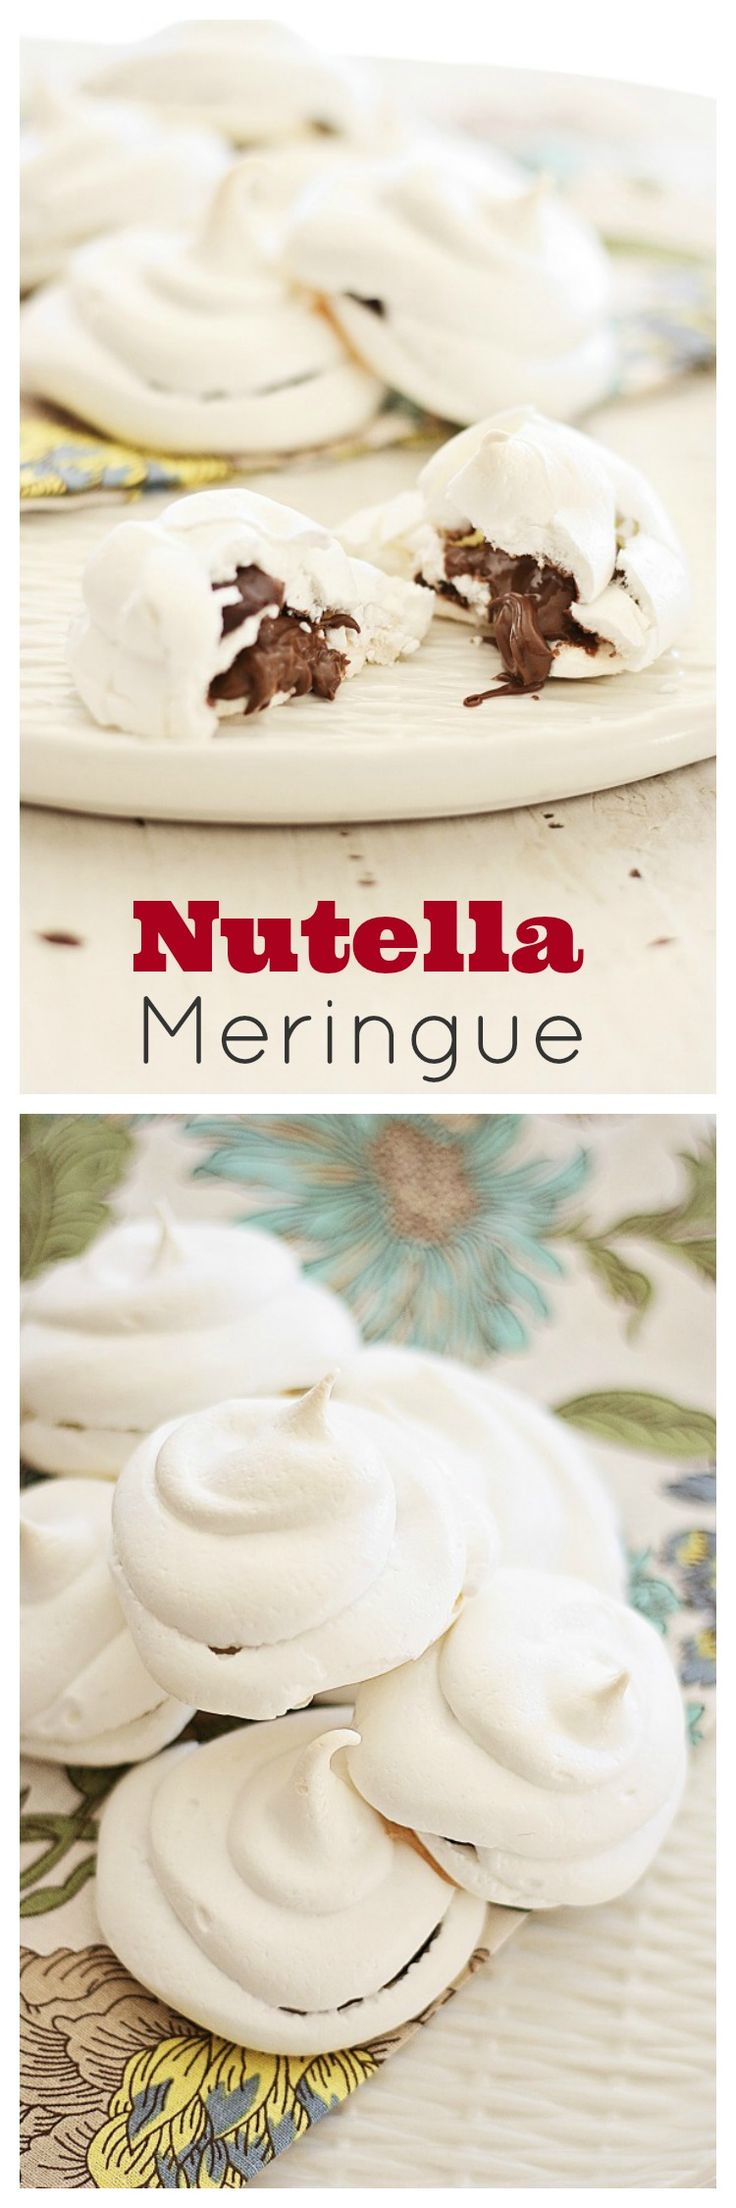 Nutella Meringue - every bite is filled with thick gooey Nutella, airy, decadent, nutty and chocolatey | rasamalaysia.com